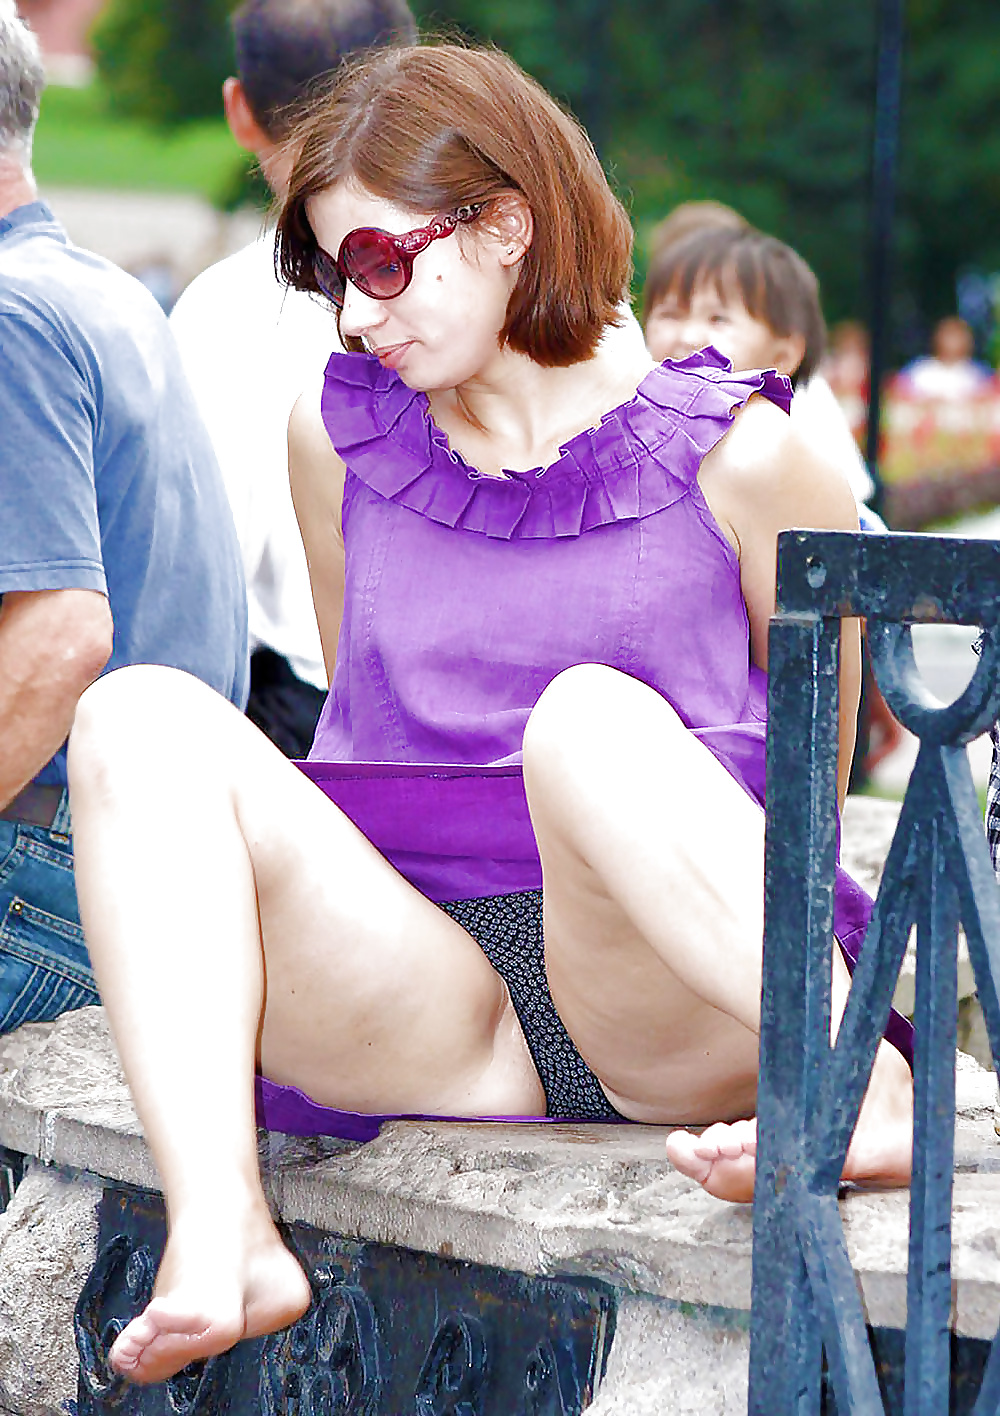 Funny pantyhose upskirt pictures